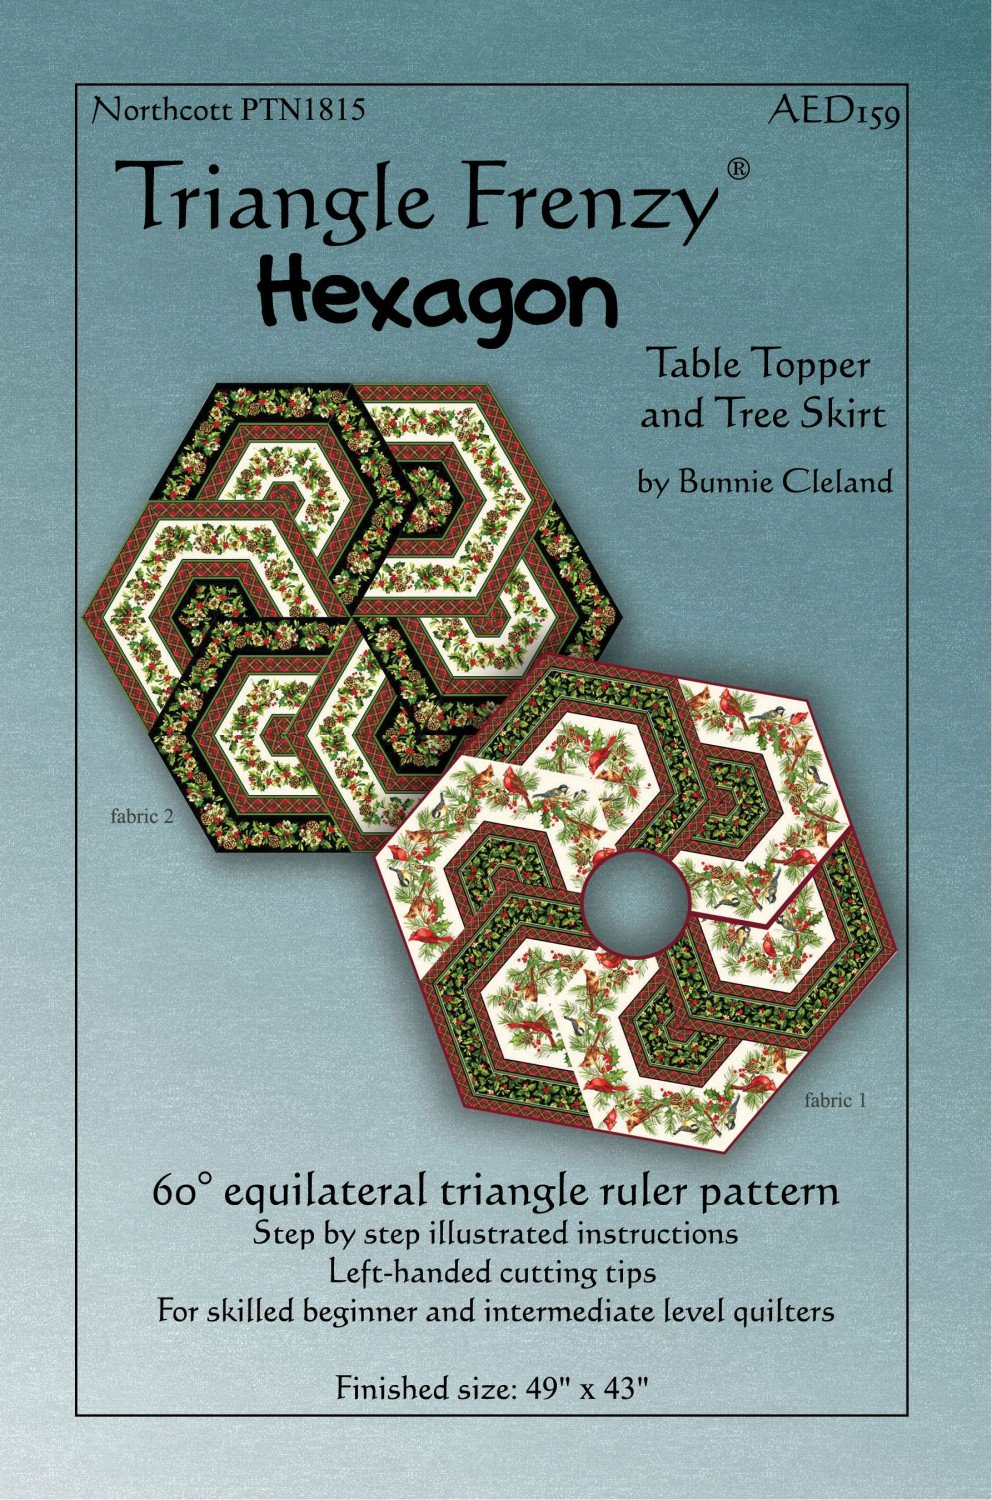 Triangle Frenzy Hexagon Table Topper